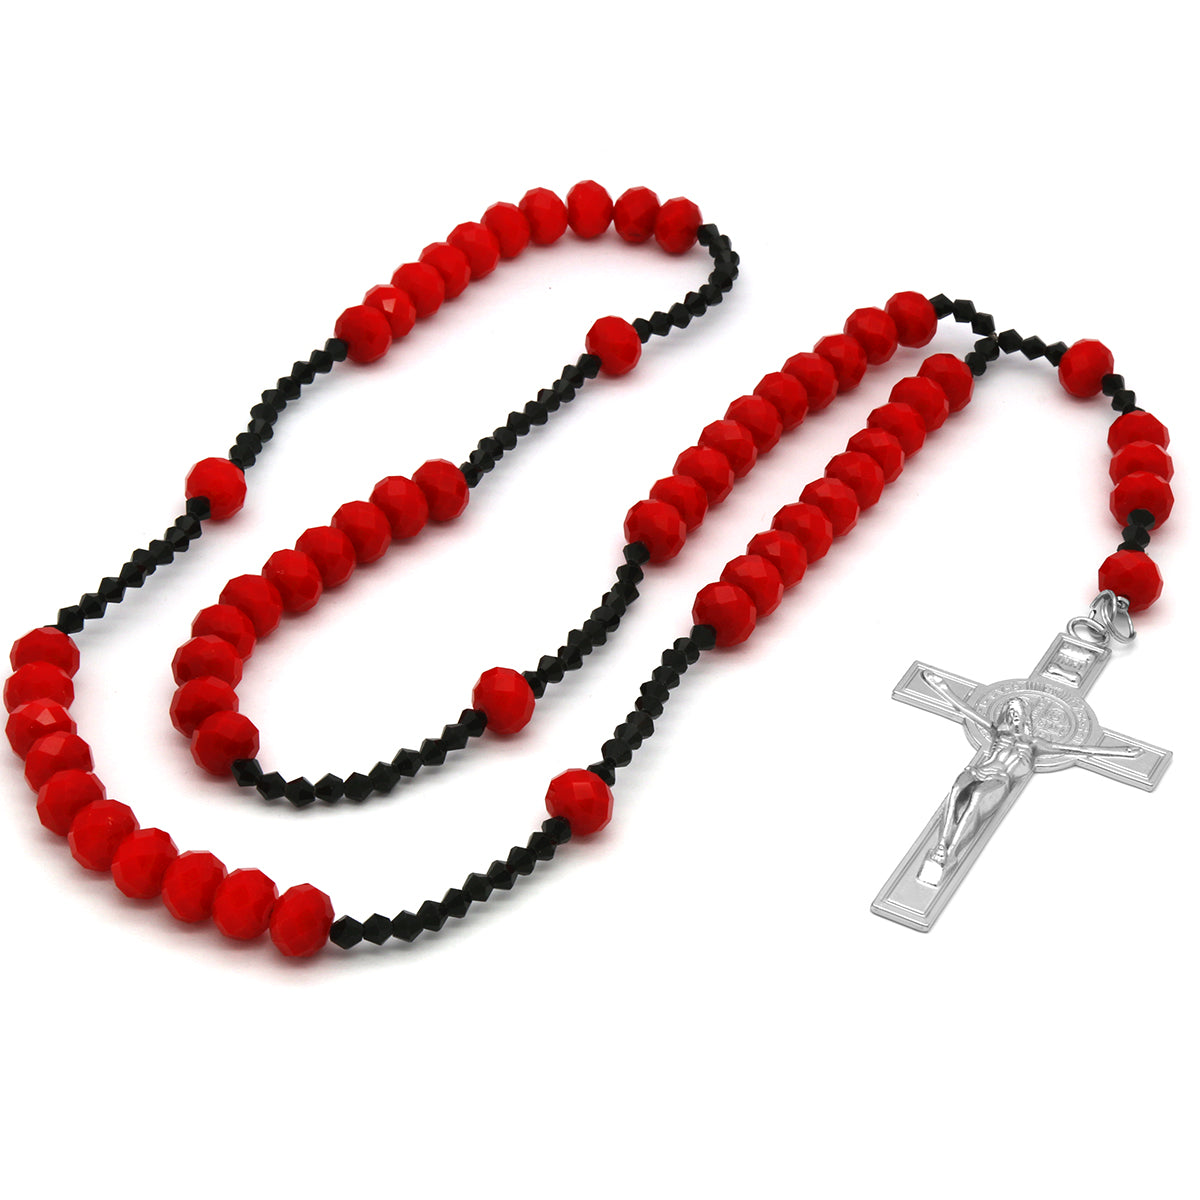 Red/Black Crystal Line Rosary With Cross Pendant